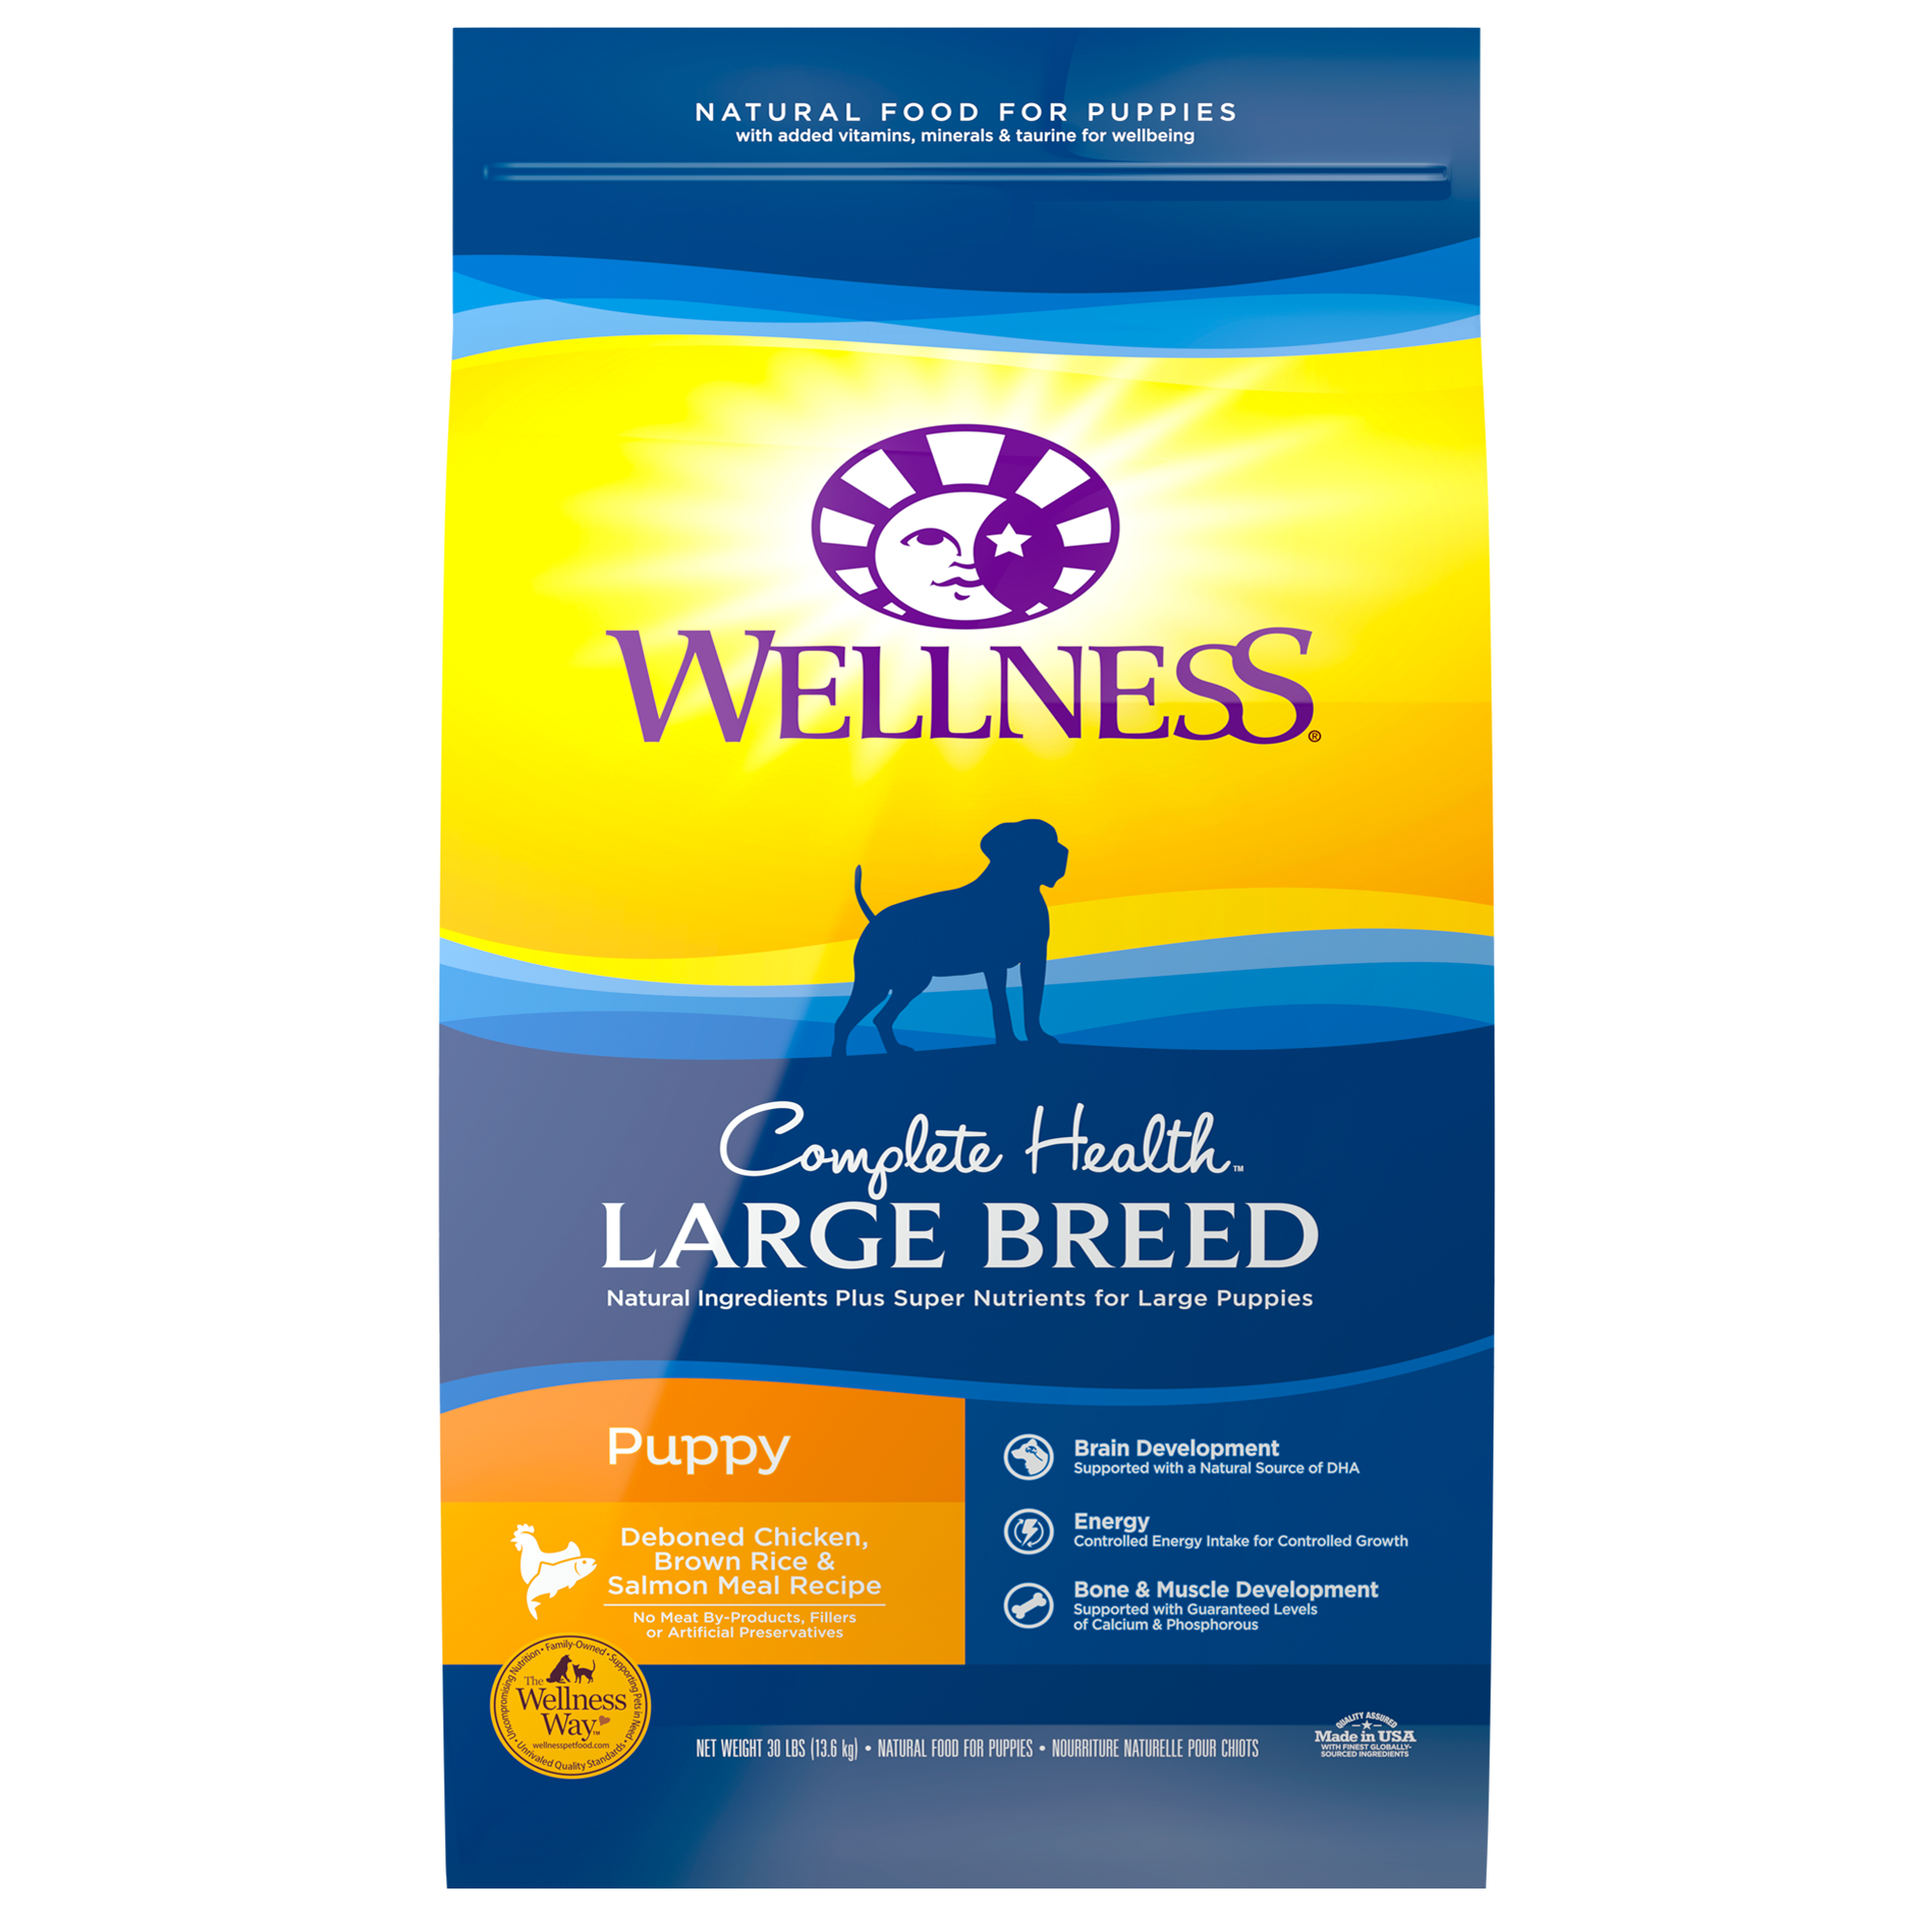 Com_Health_Dry_Lrg_Breed_puppy